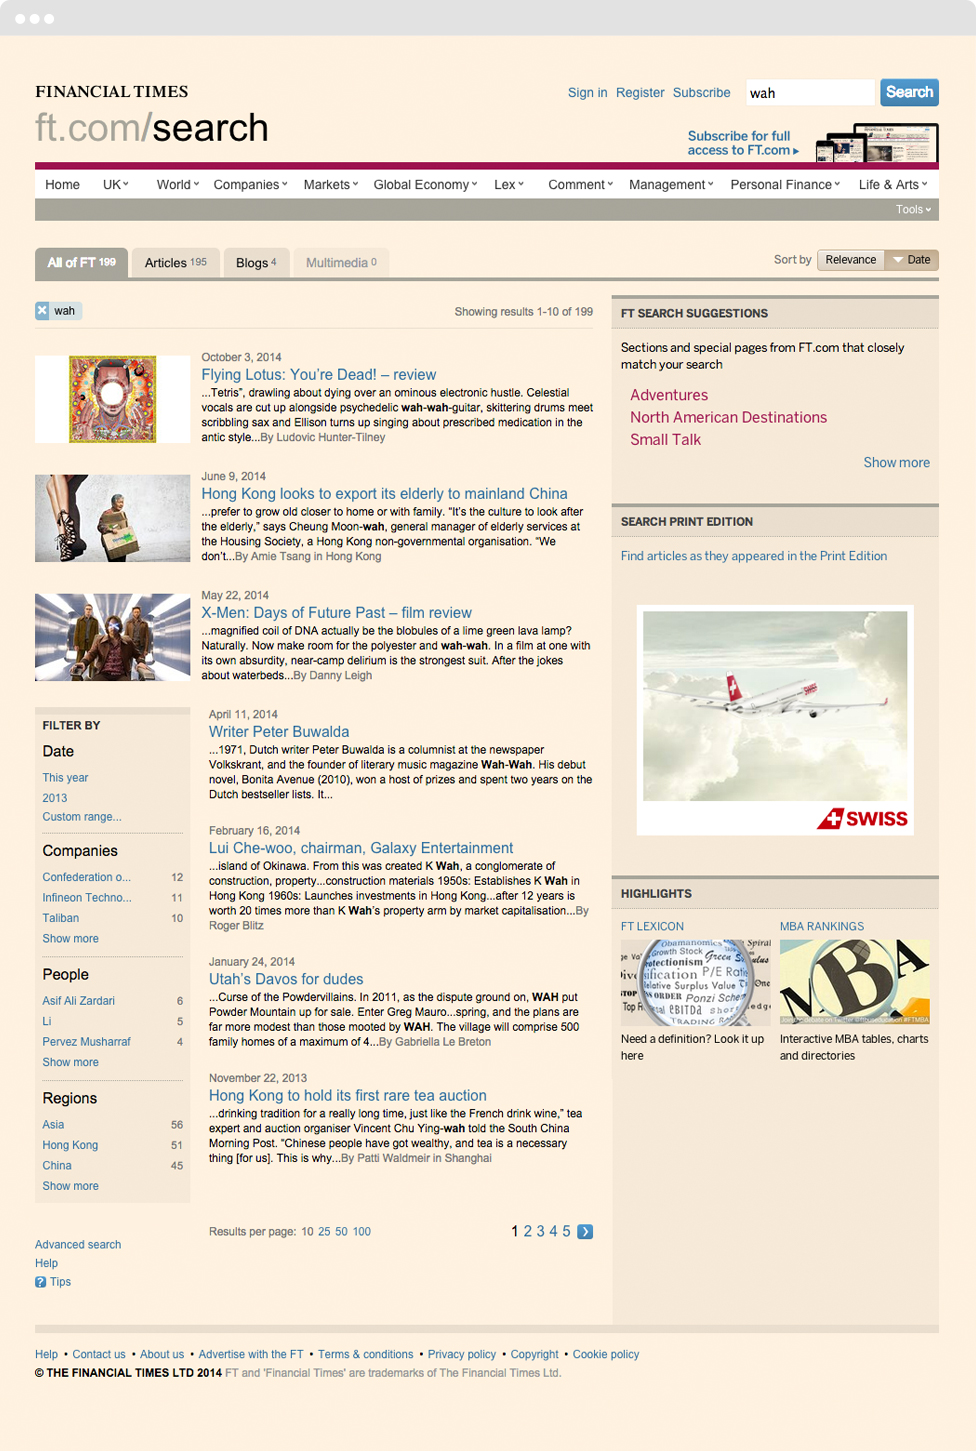 The search results page of The Financial Times  presents results in a curated, editorial manner befitting the paper.